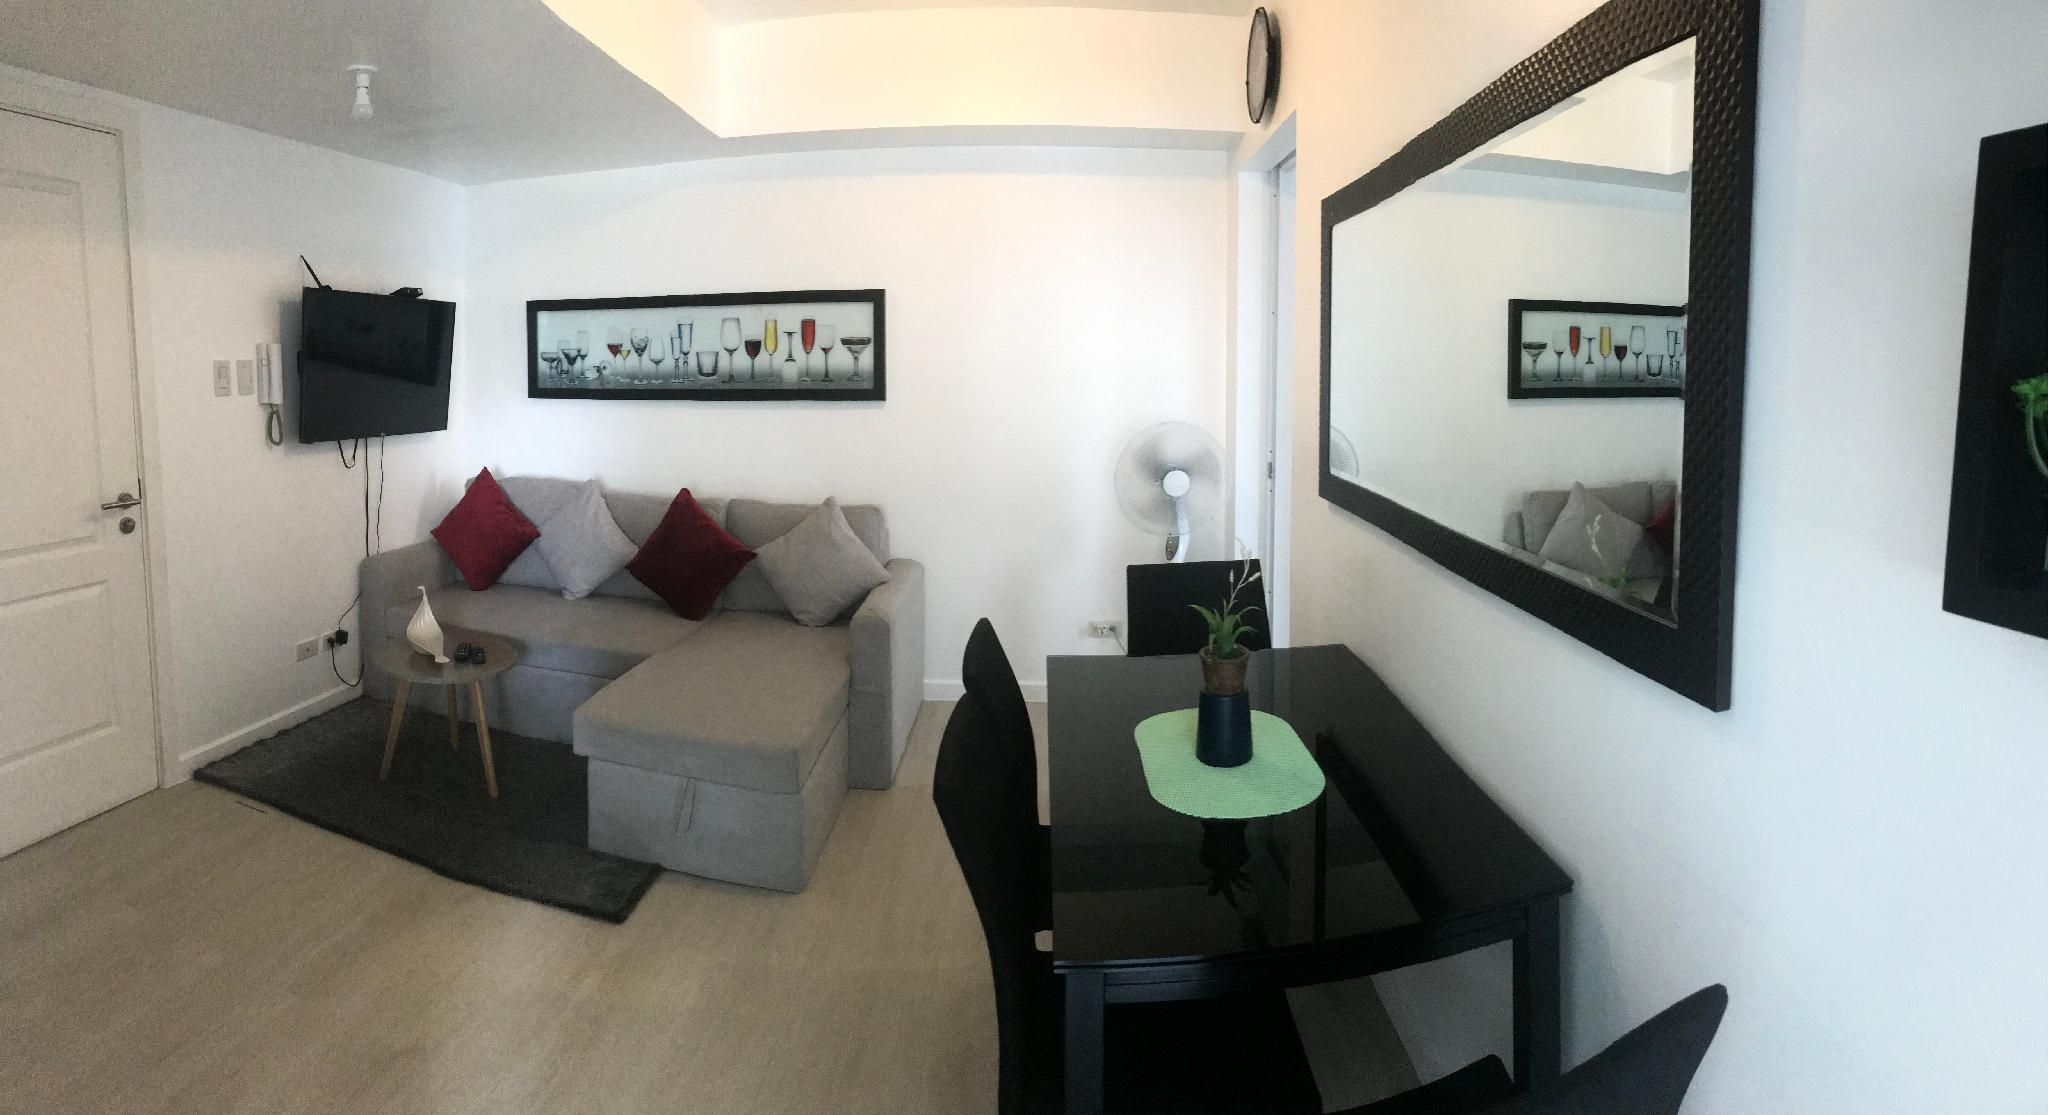 M511 2BR * Condominium Unit in Azure Residences